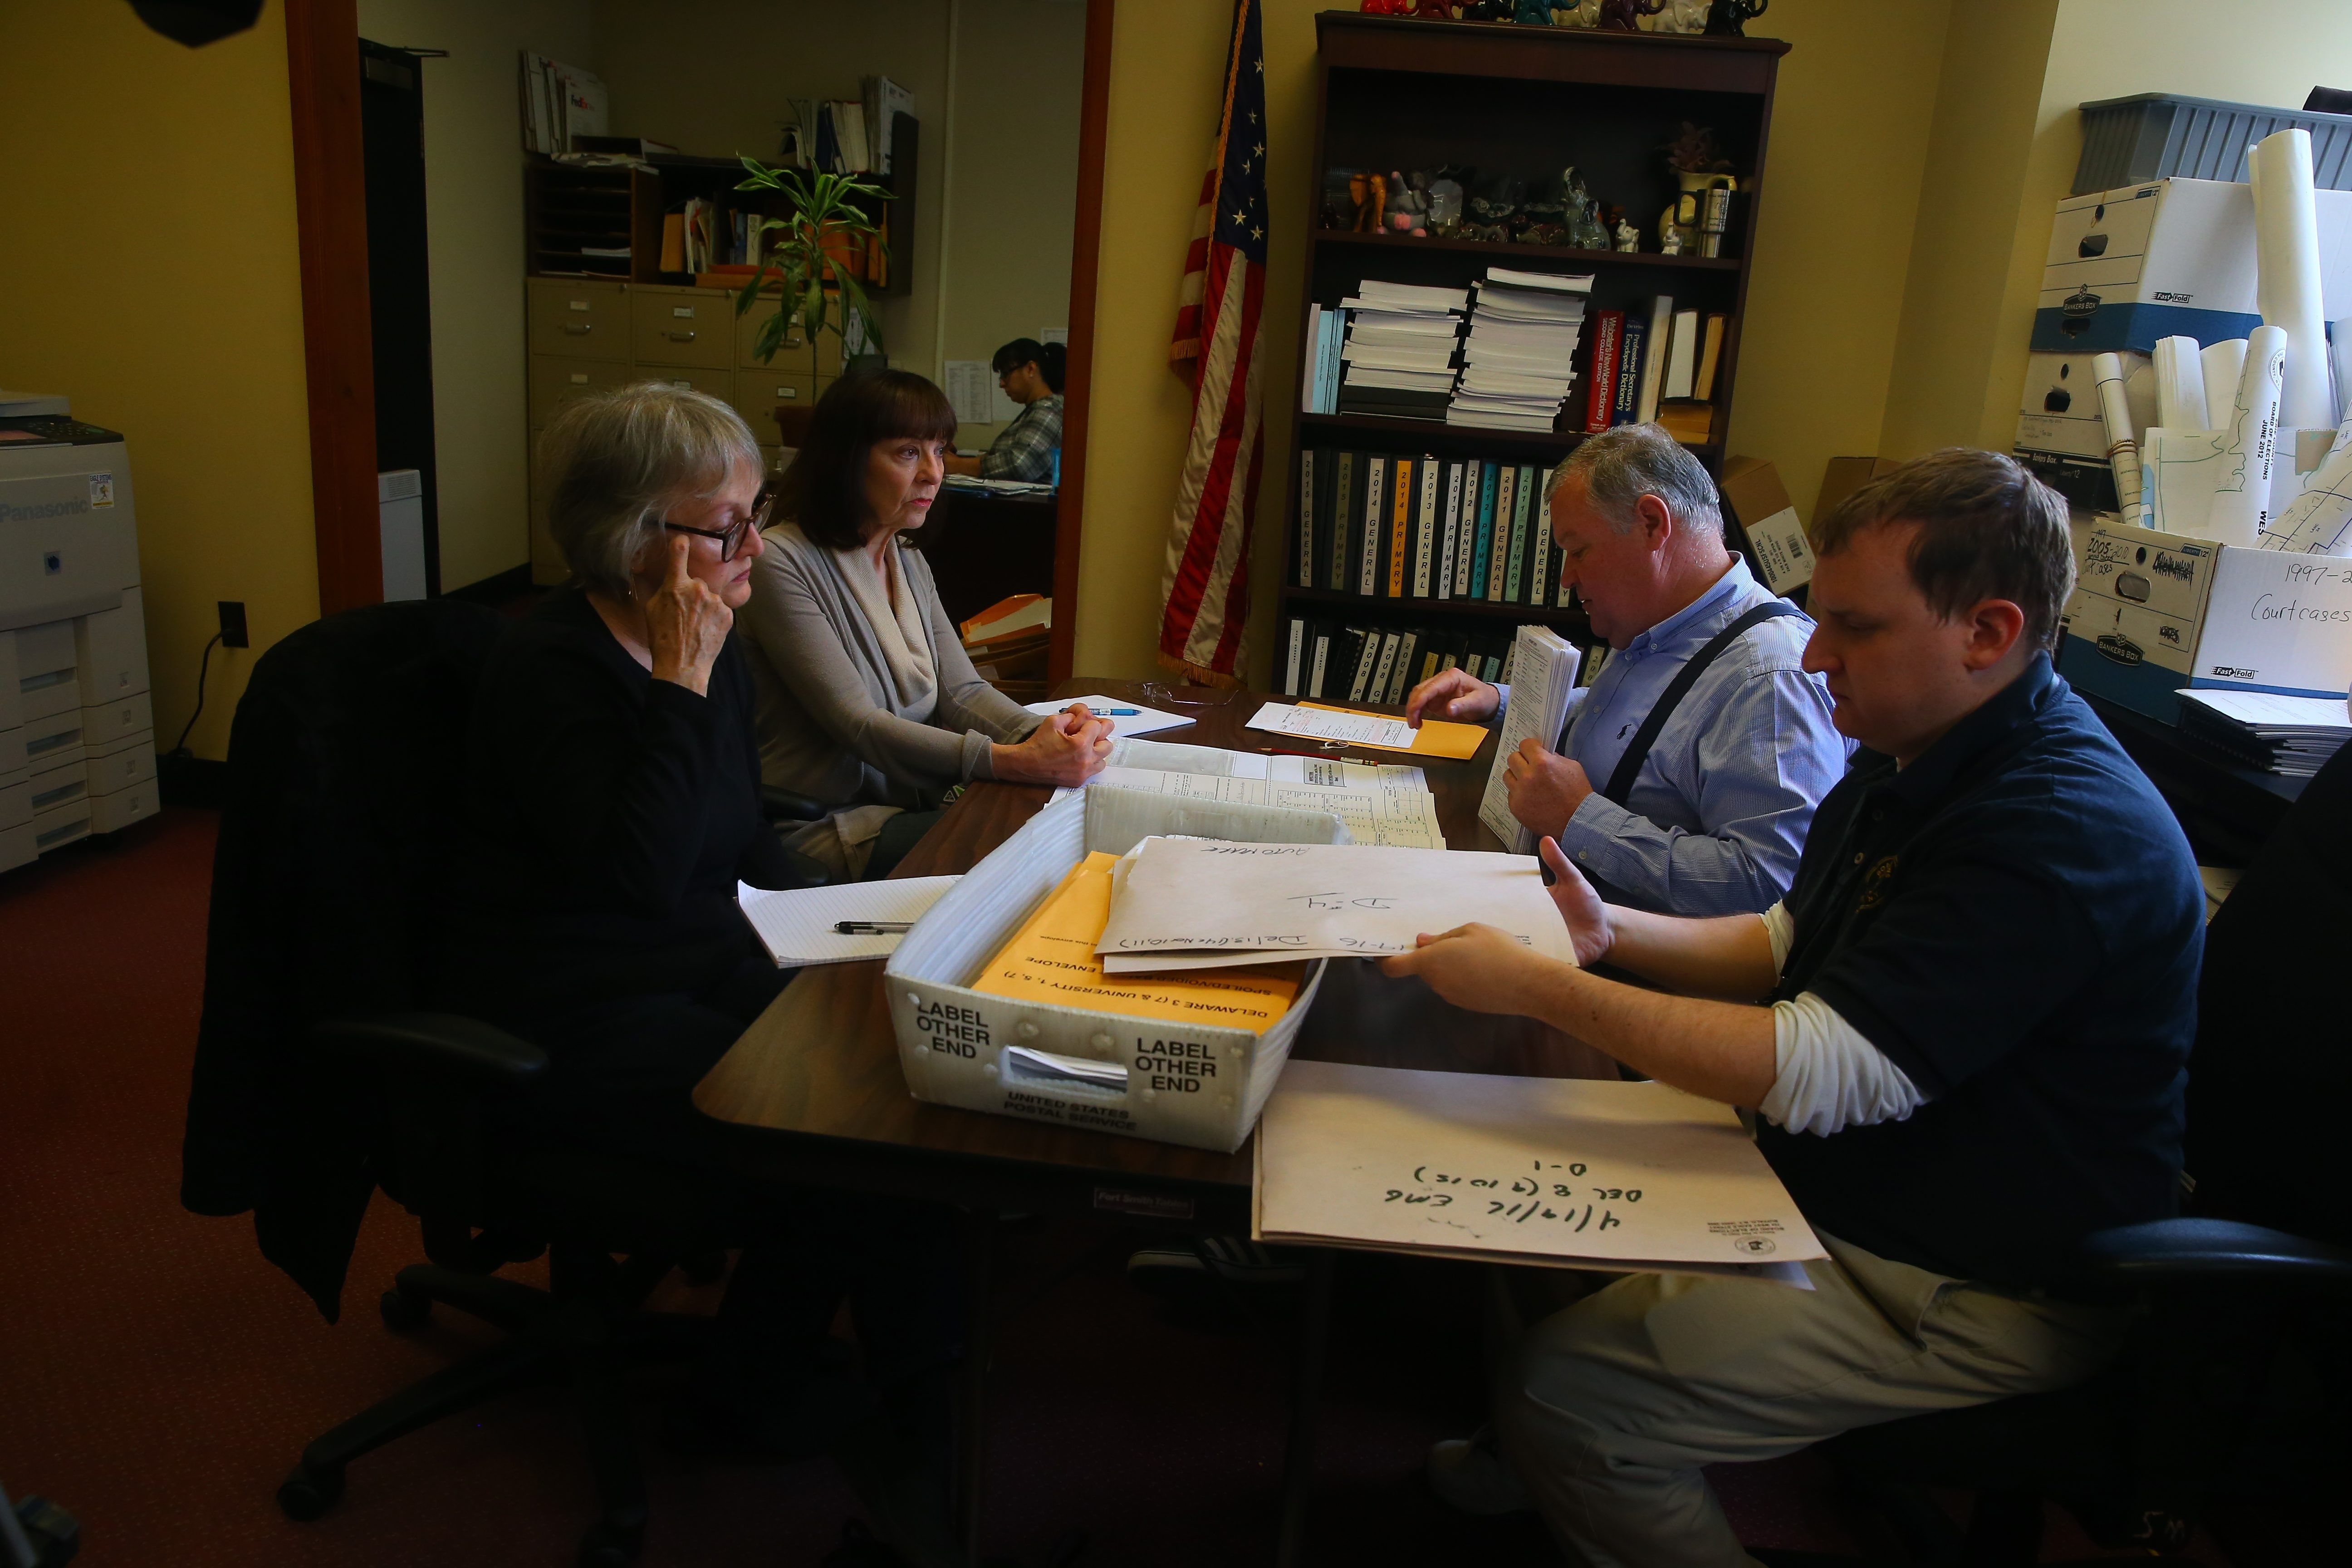 Bernie Sanders supporters, left, watch as Erie County Election Commissioner Ralph Mohr, top right, and clerk Matthew Jowsey tabulate affidavit ballots from primary.